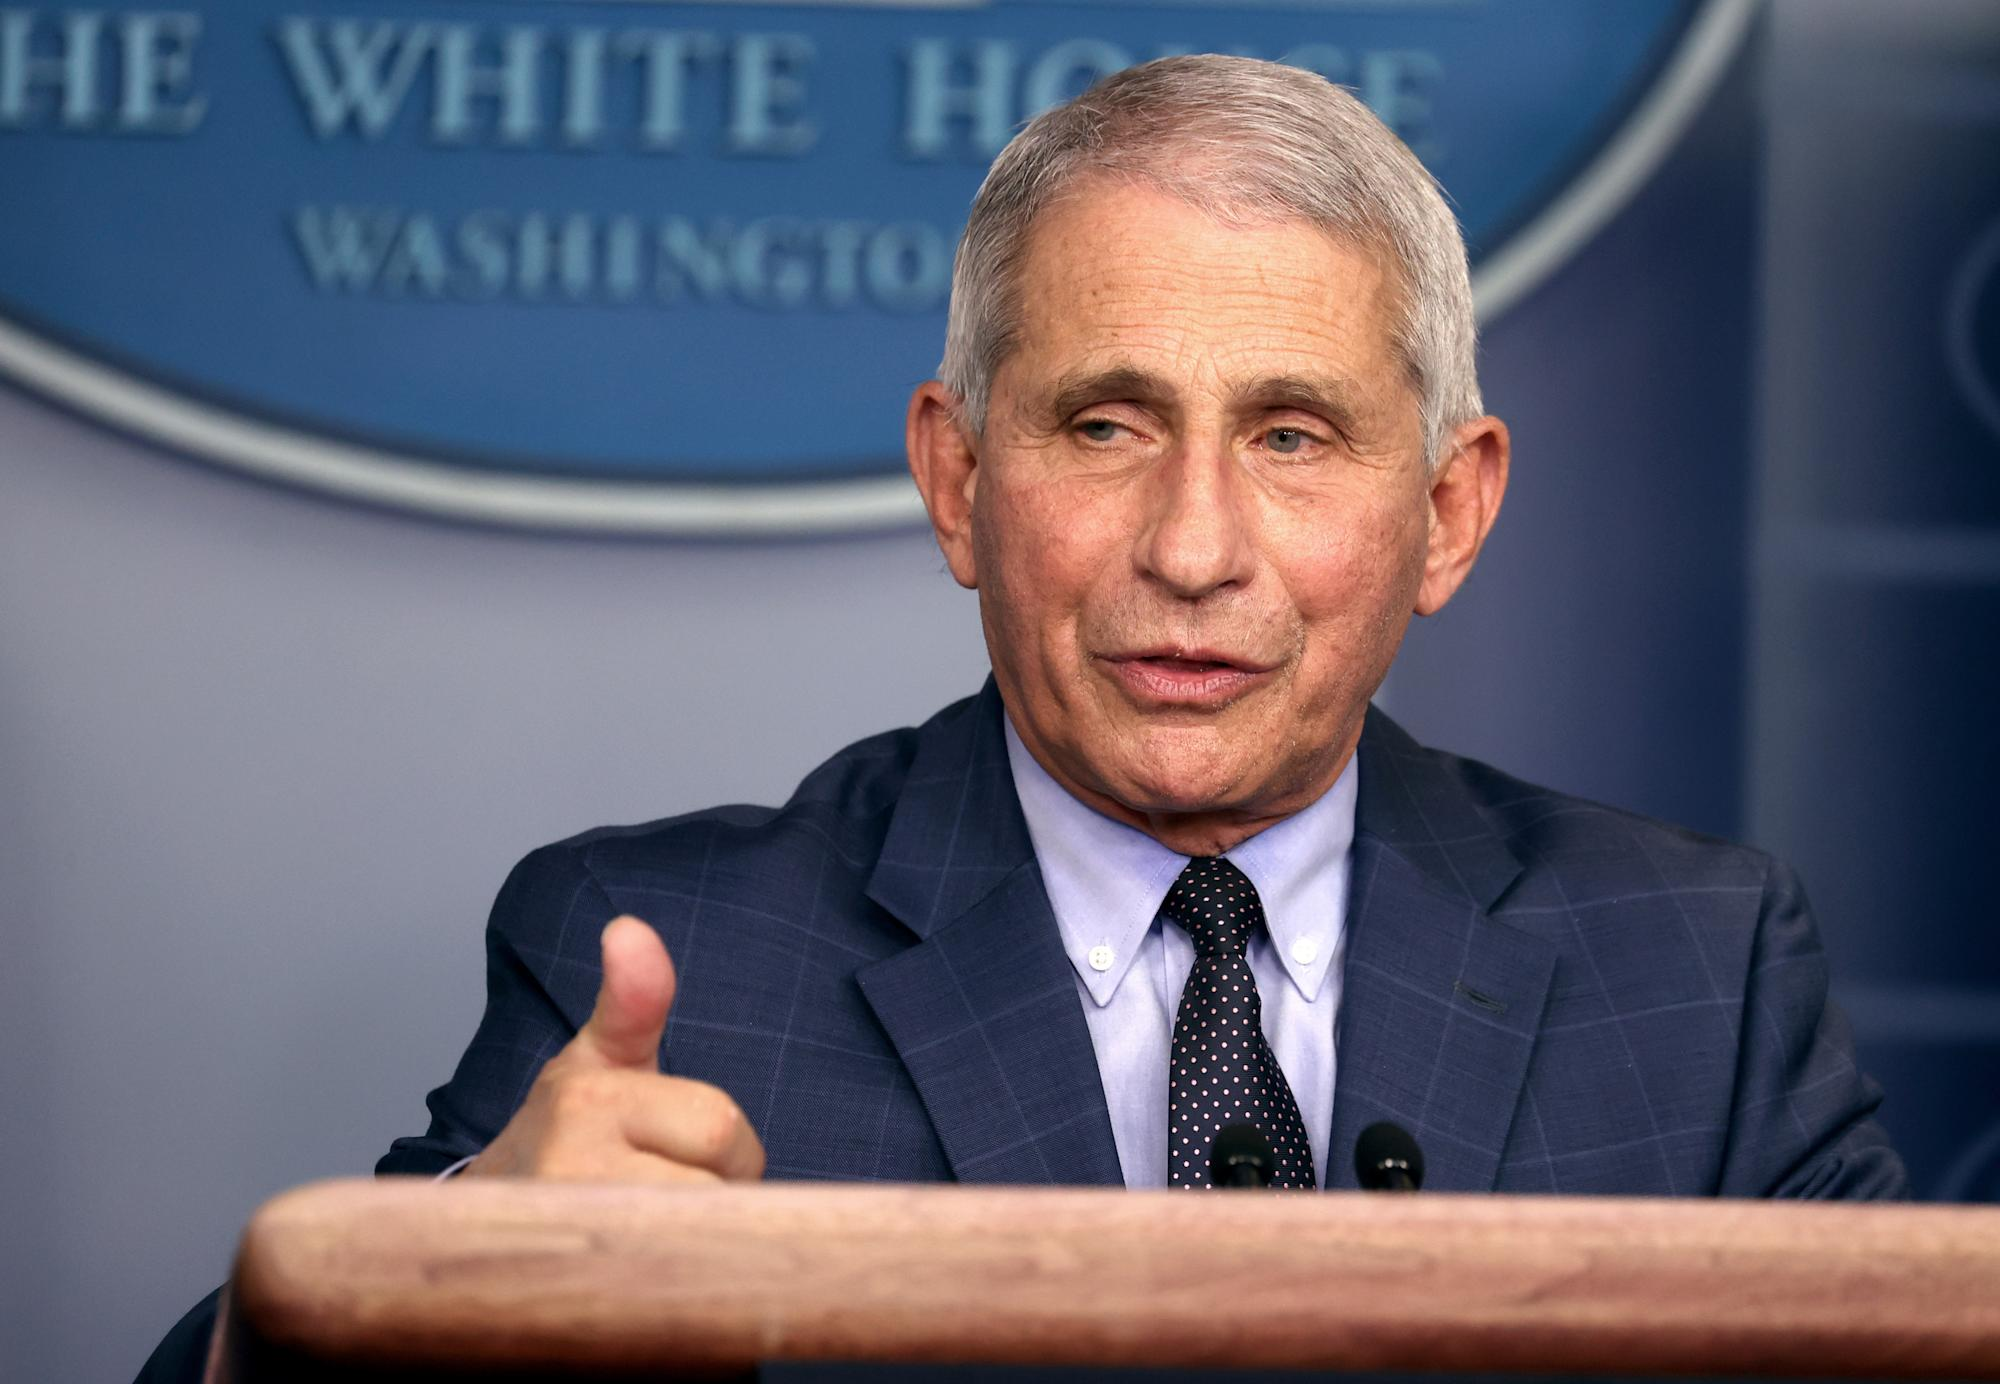 When will sports stadiums be full again? Dr. Anthony Fauci gives a timeline